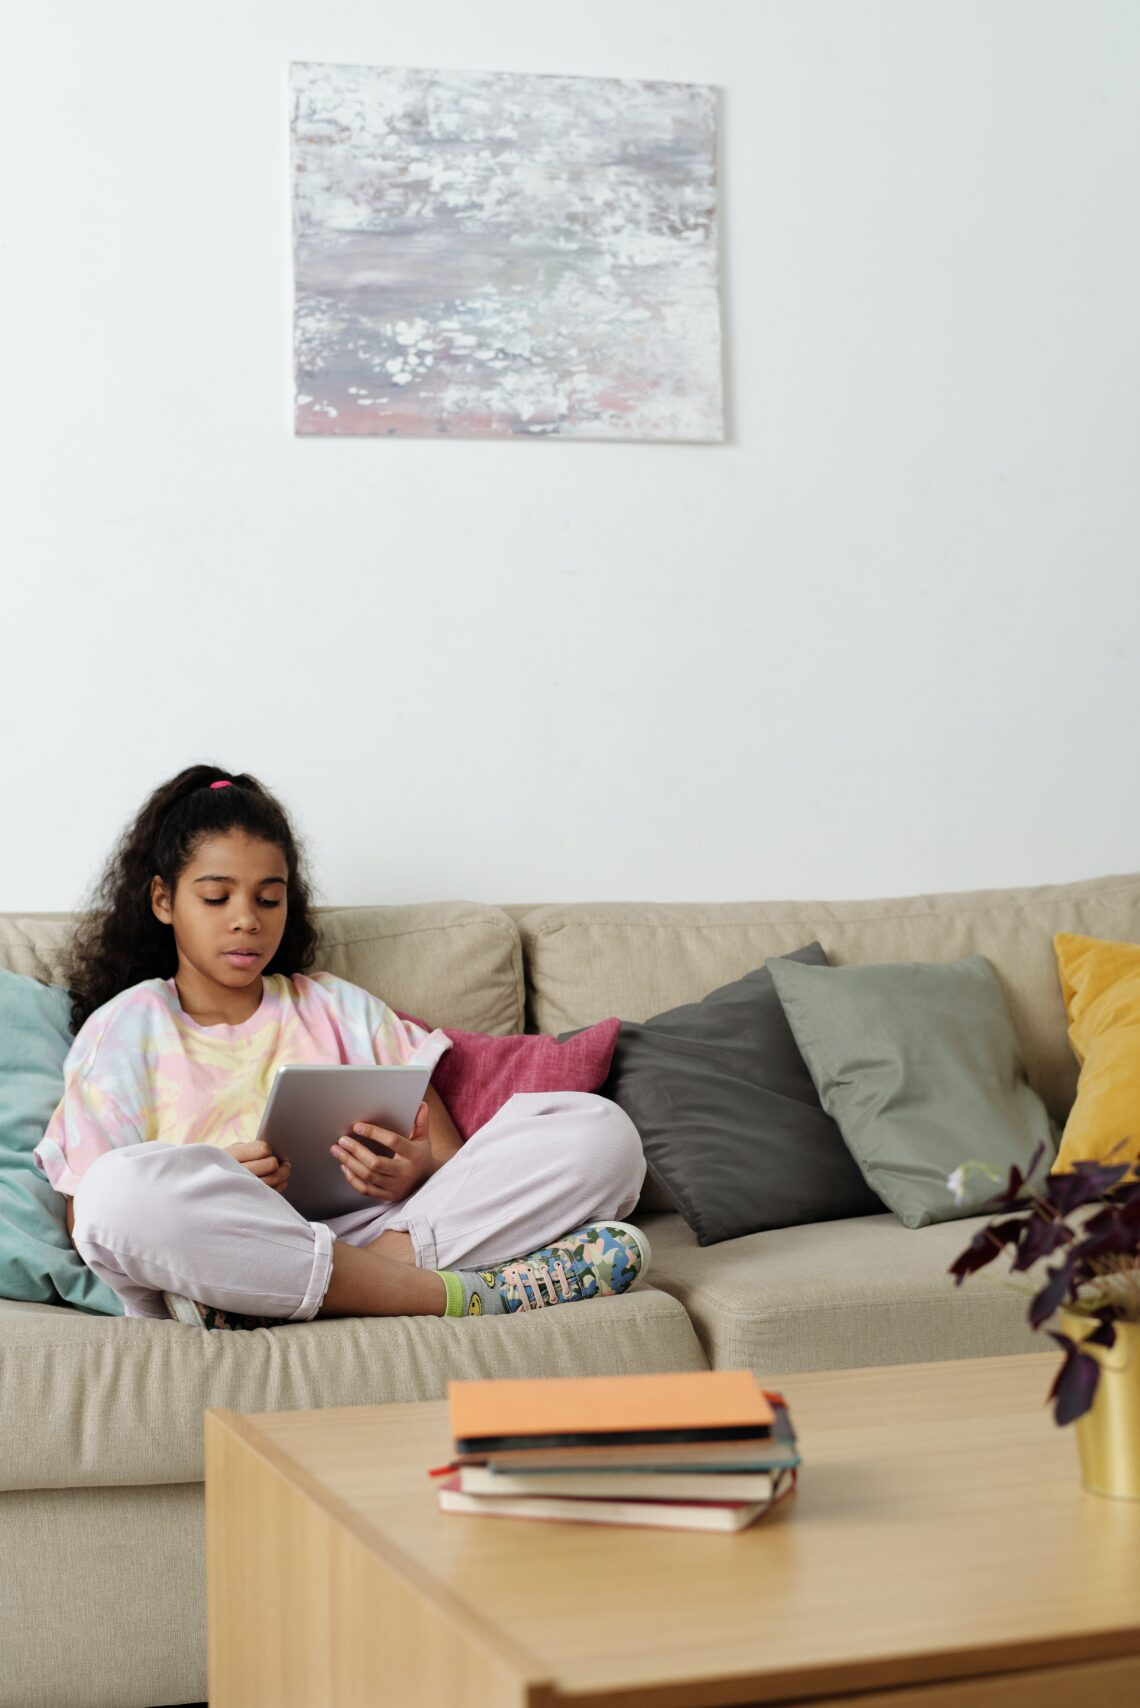 Tips to help manage kids' screen time